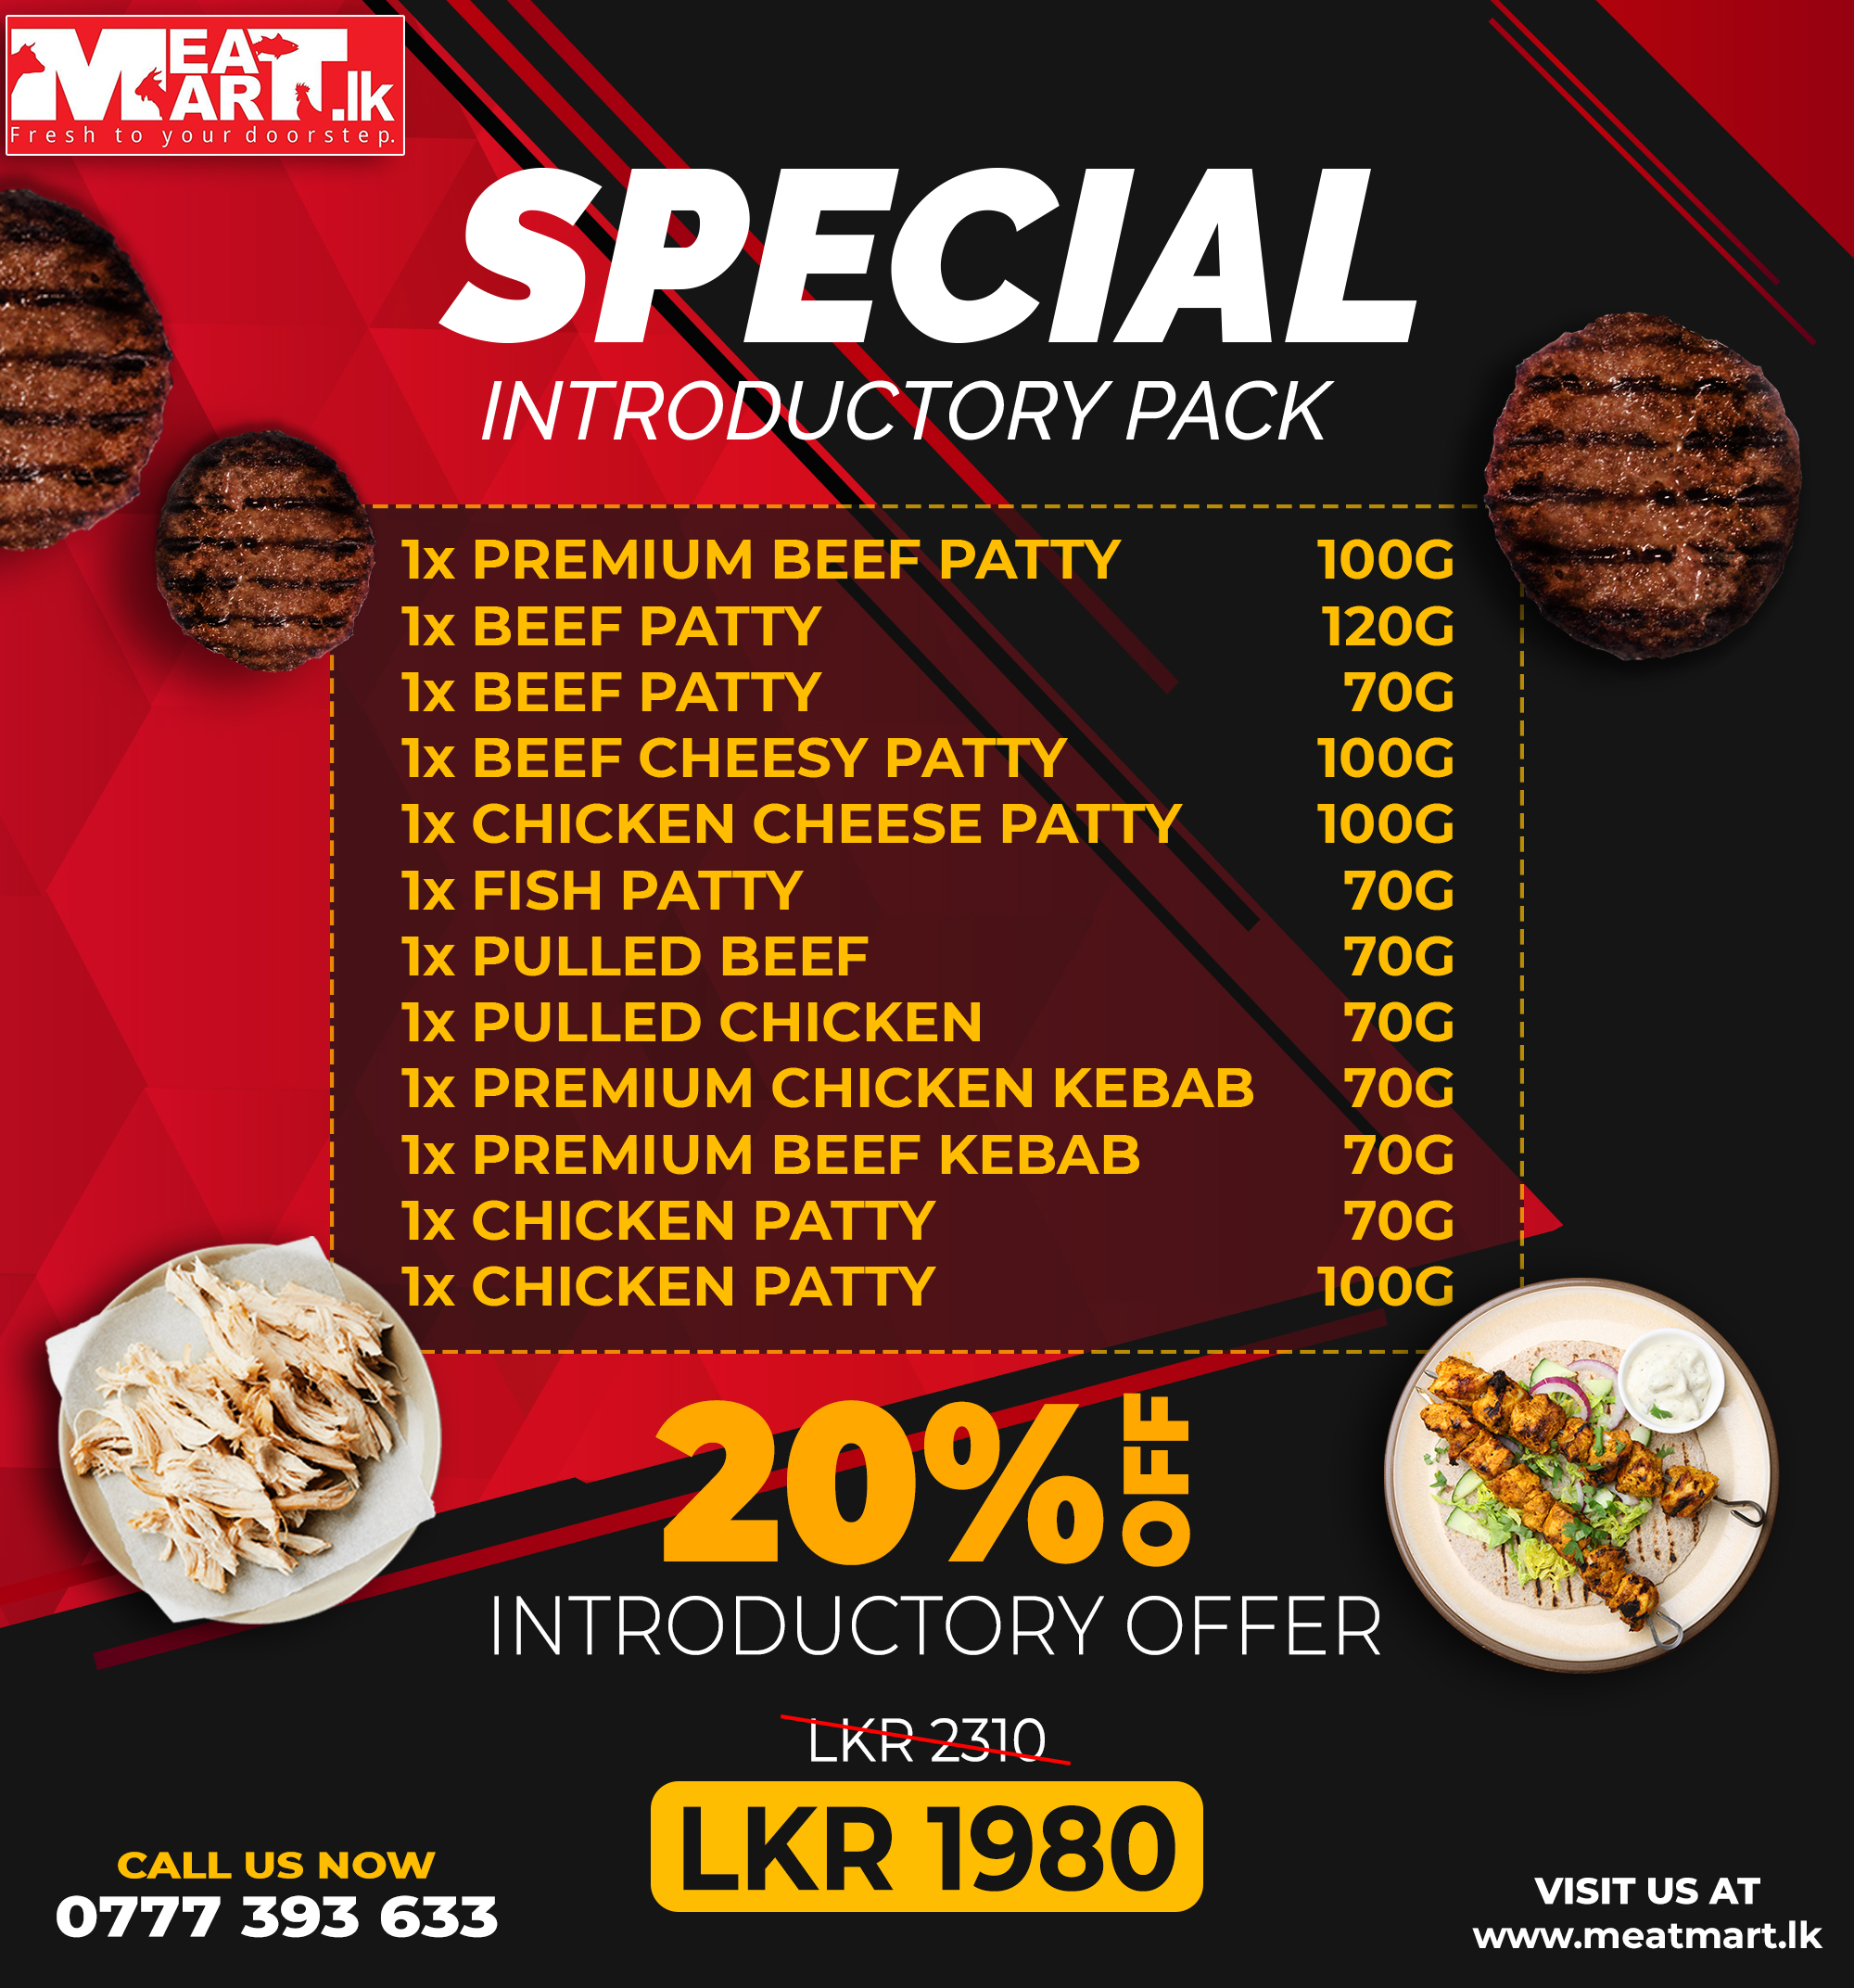 Special introductory pack